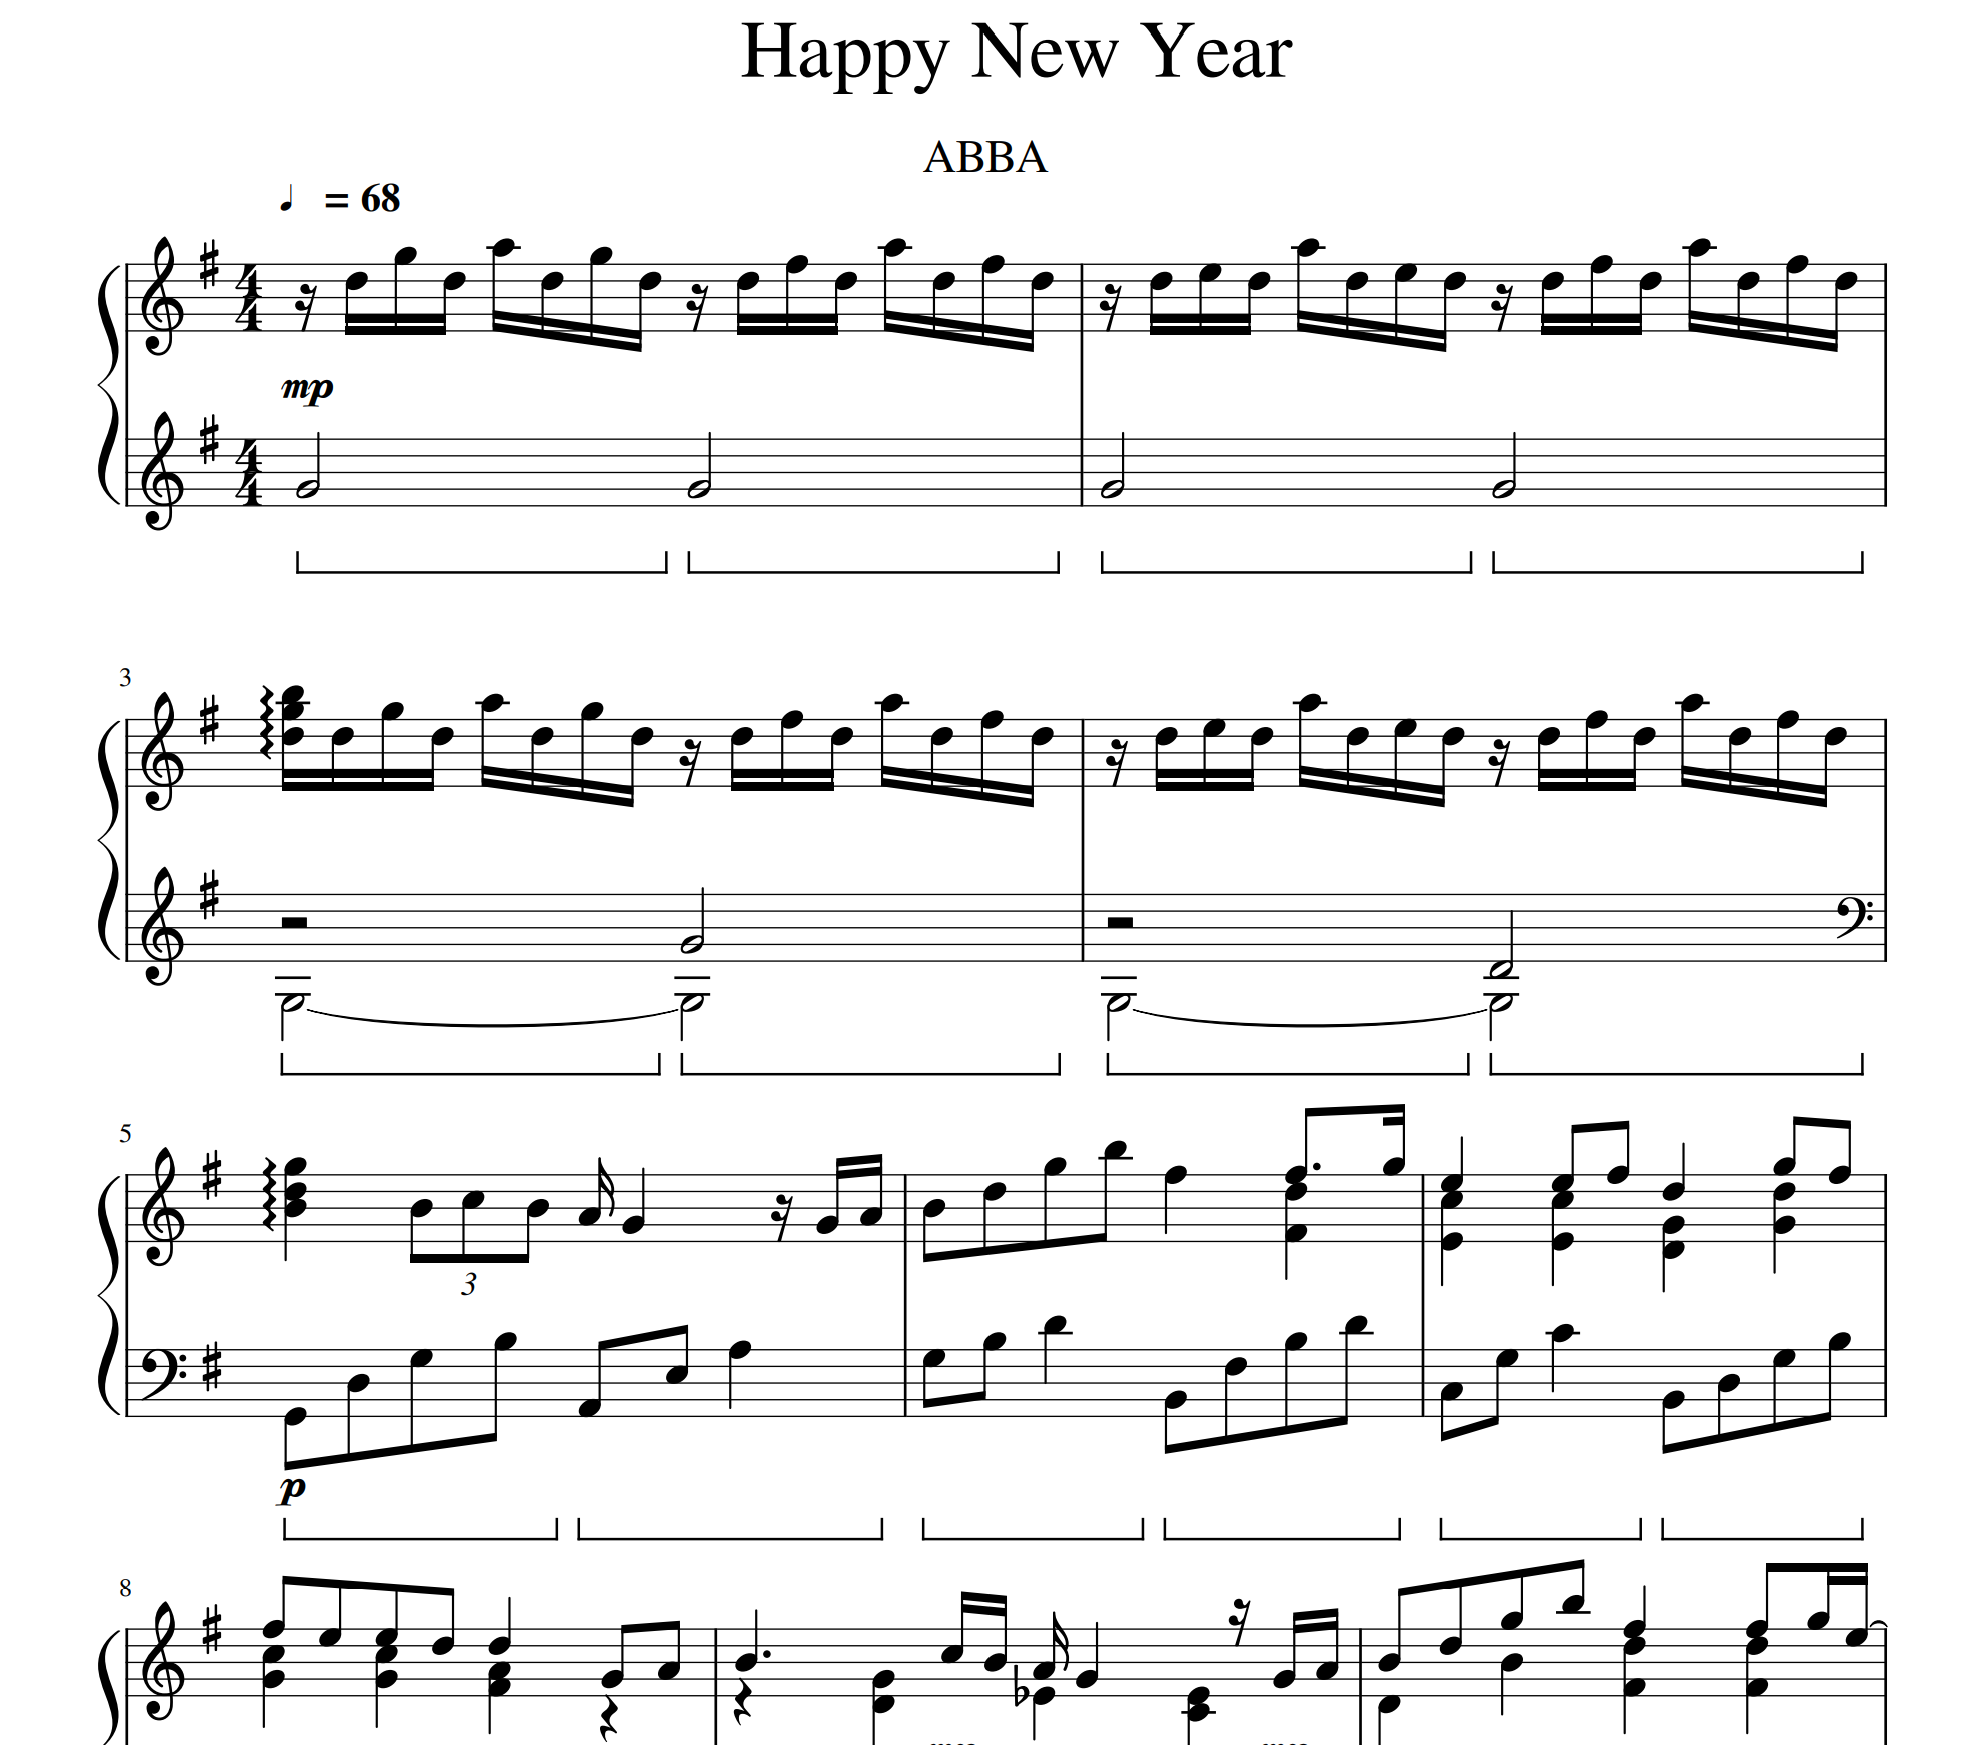 ABBA- Happy New Year sheet music for piano